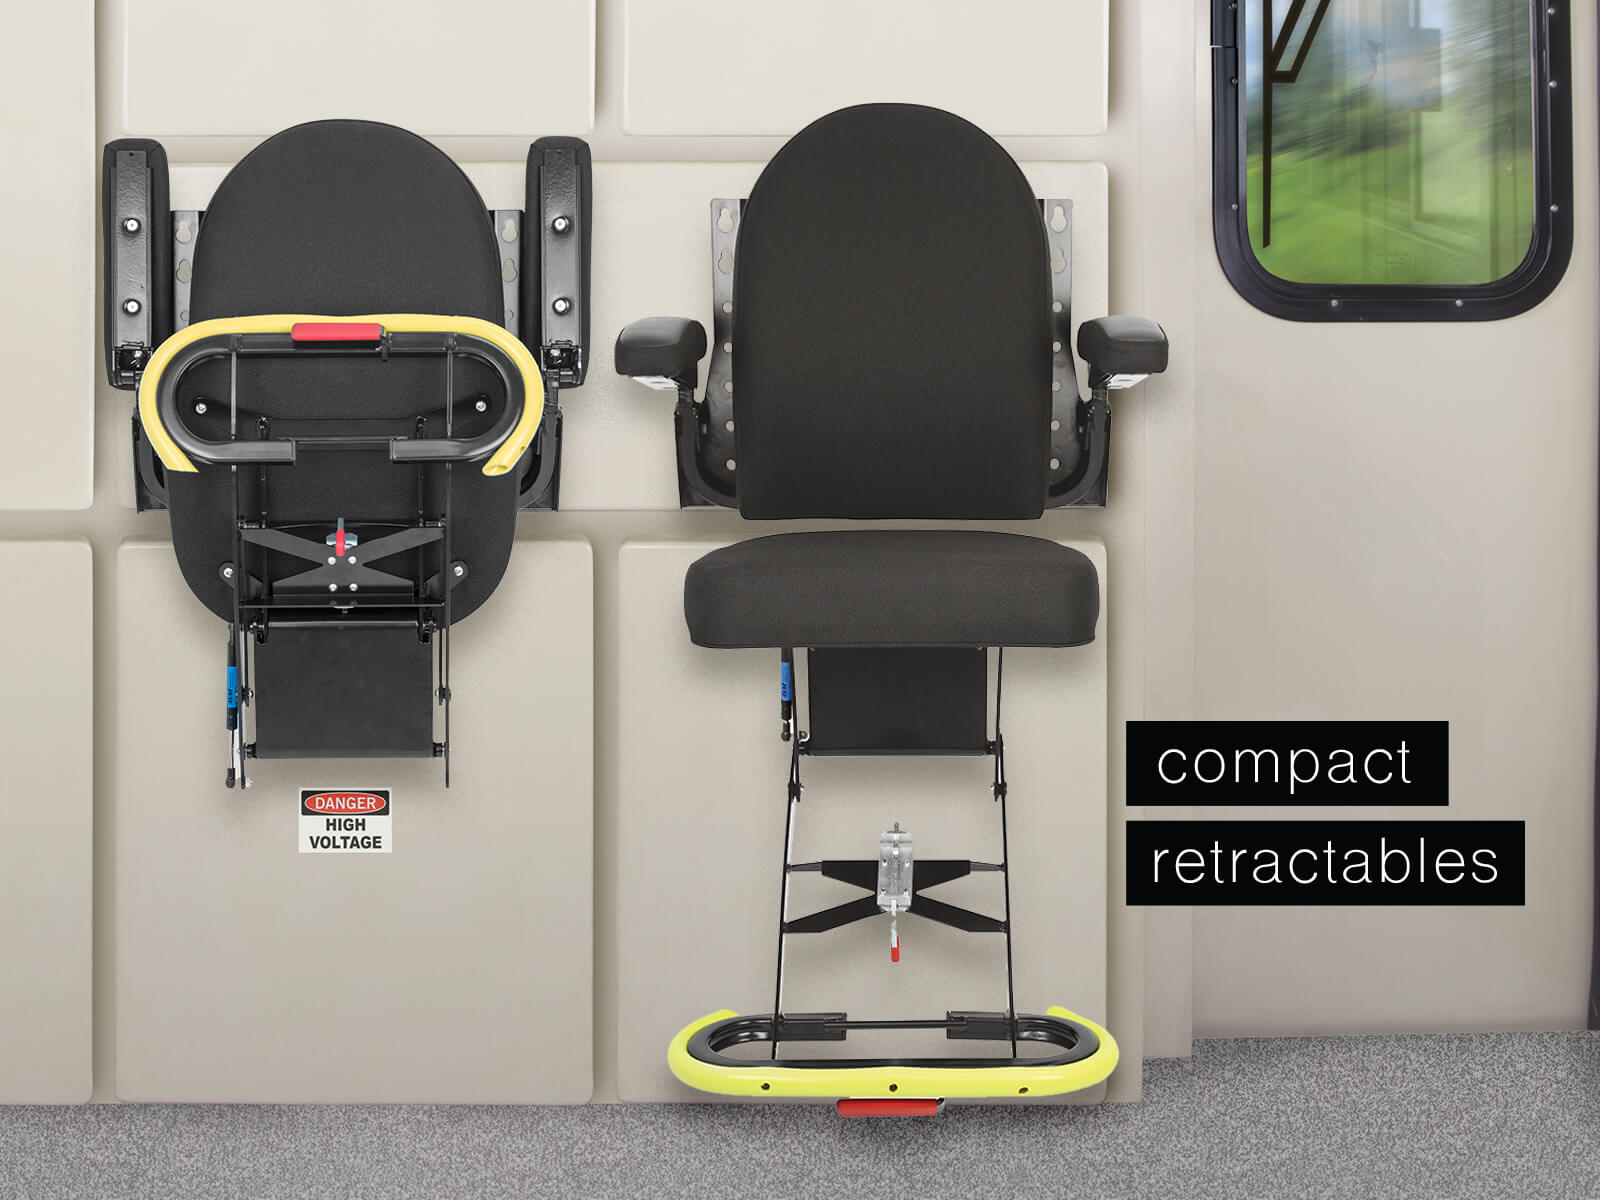 Baultar's Compact Retractable Seat